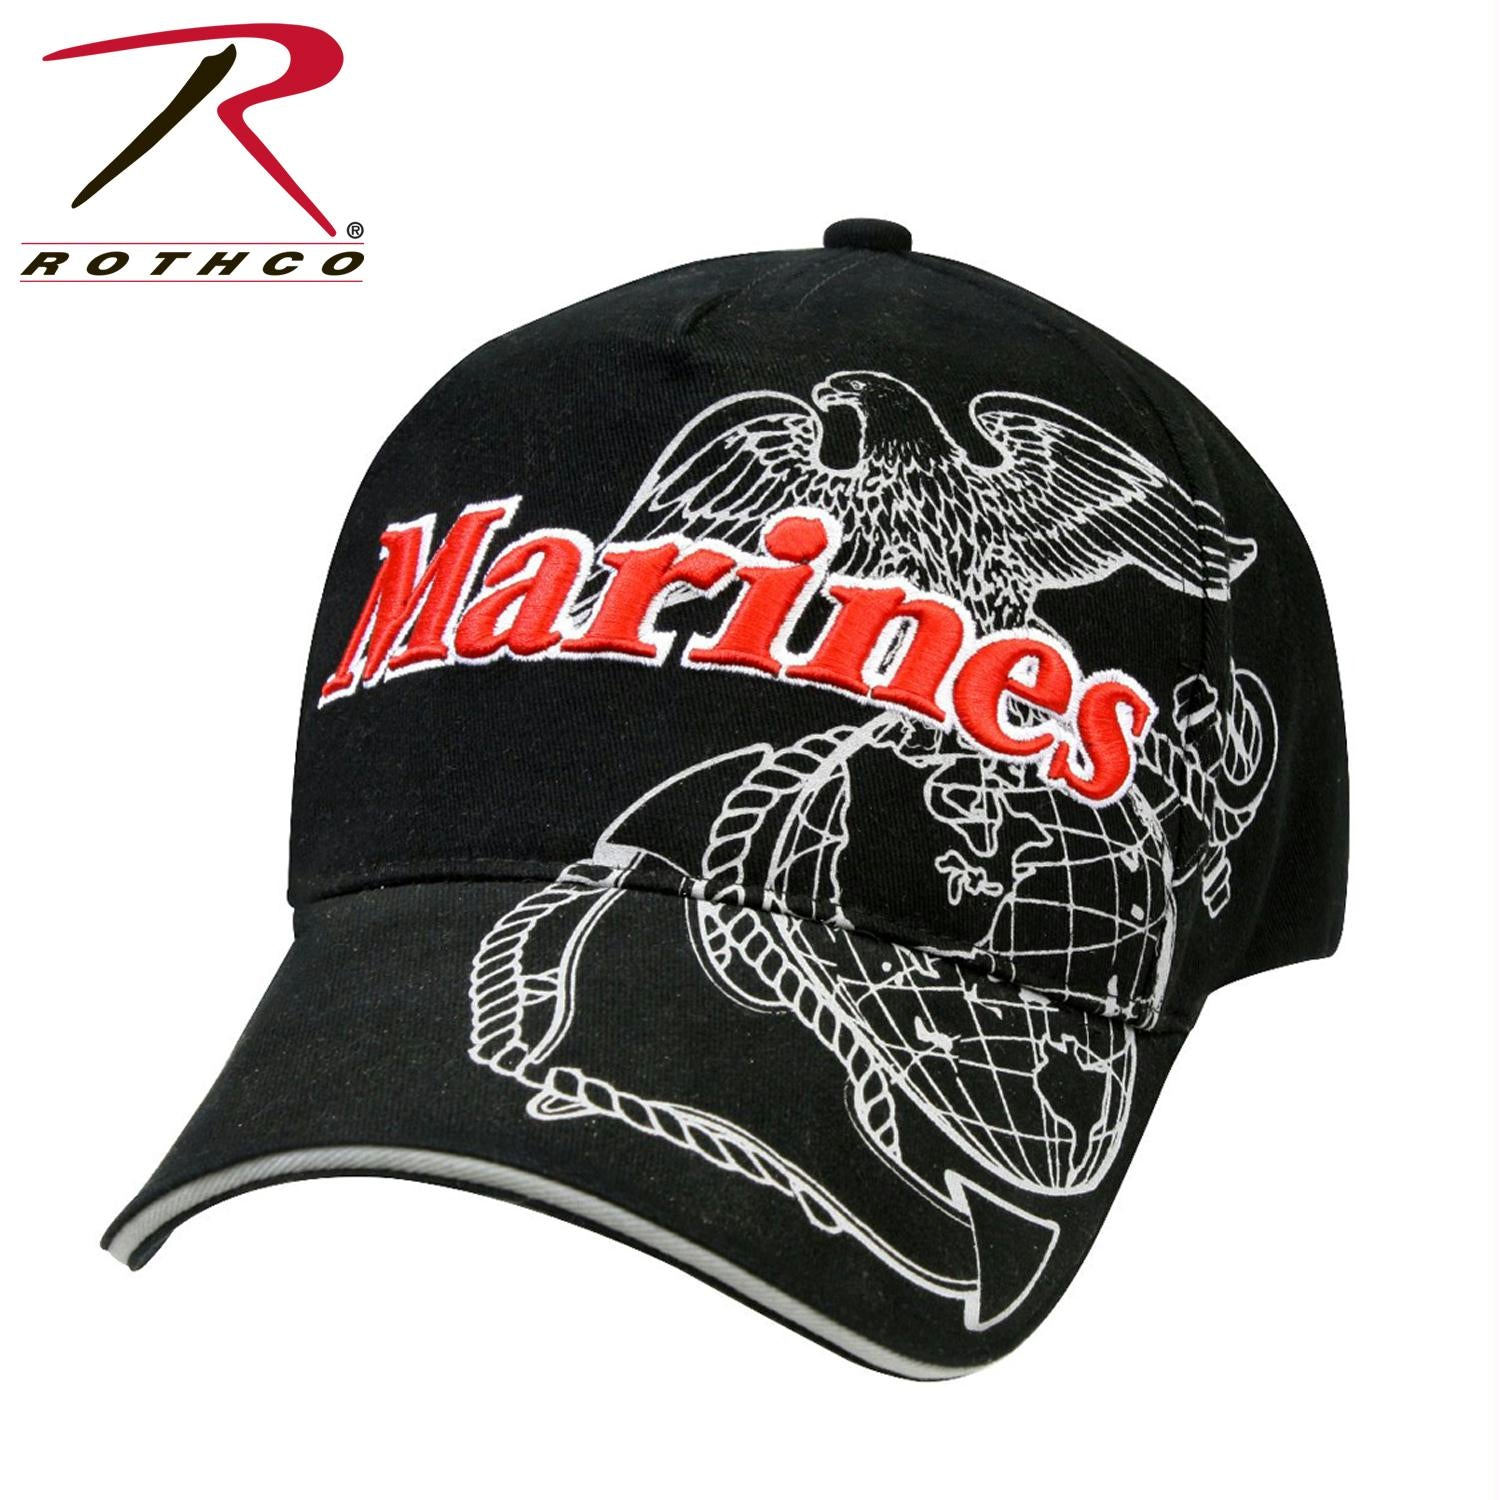 Rothco Deluxe Marines G&A Low Profile Insignia Cap - Black